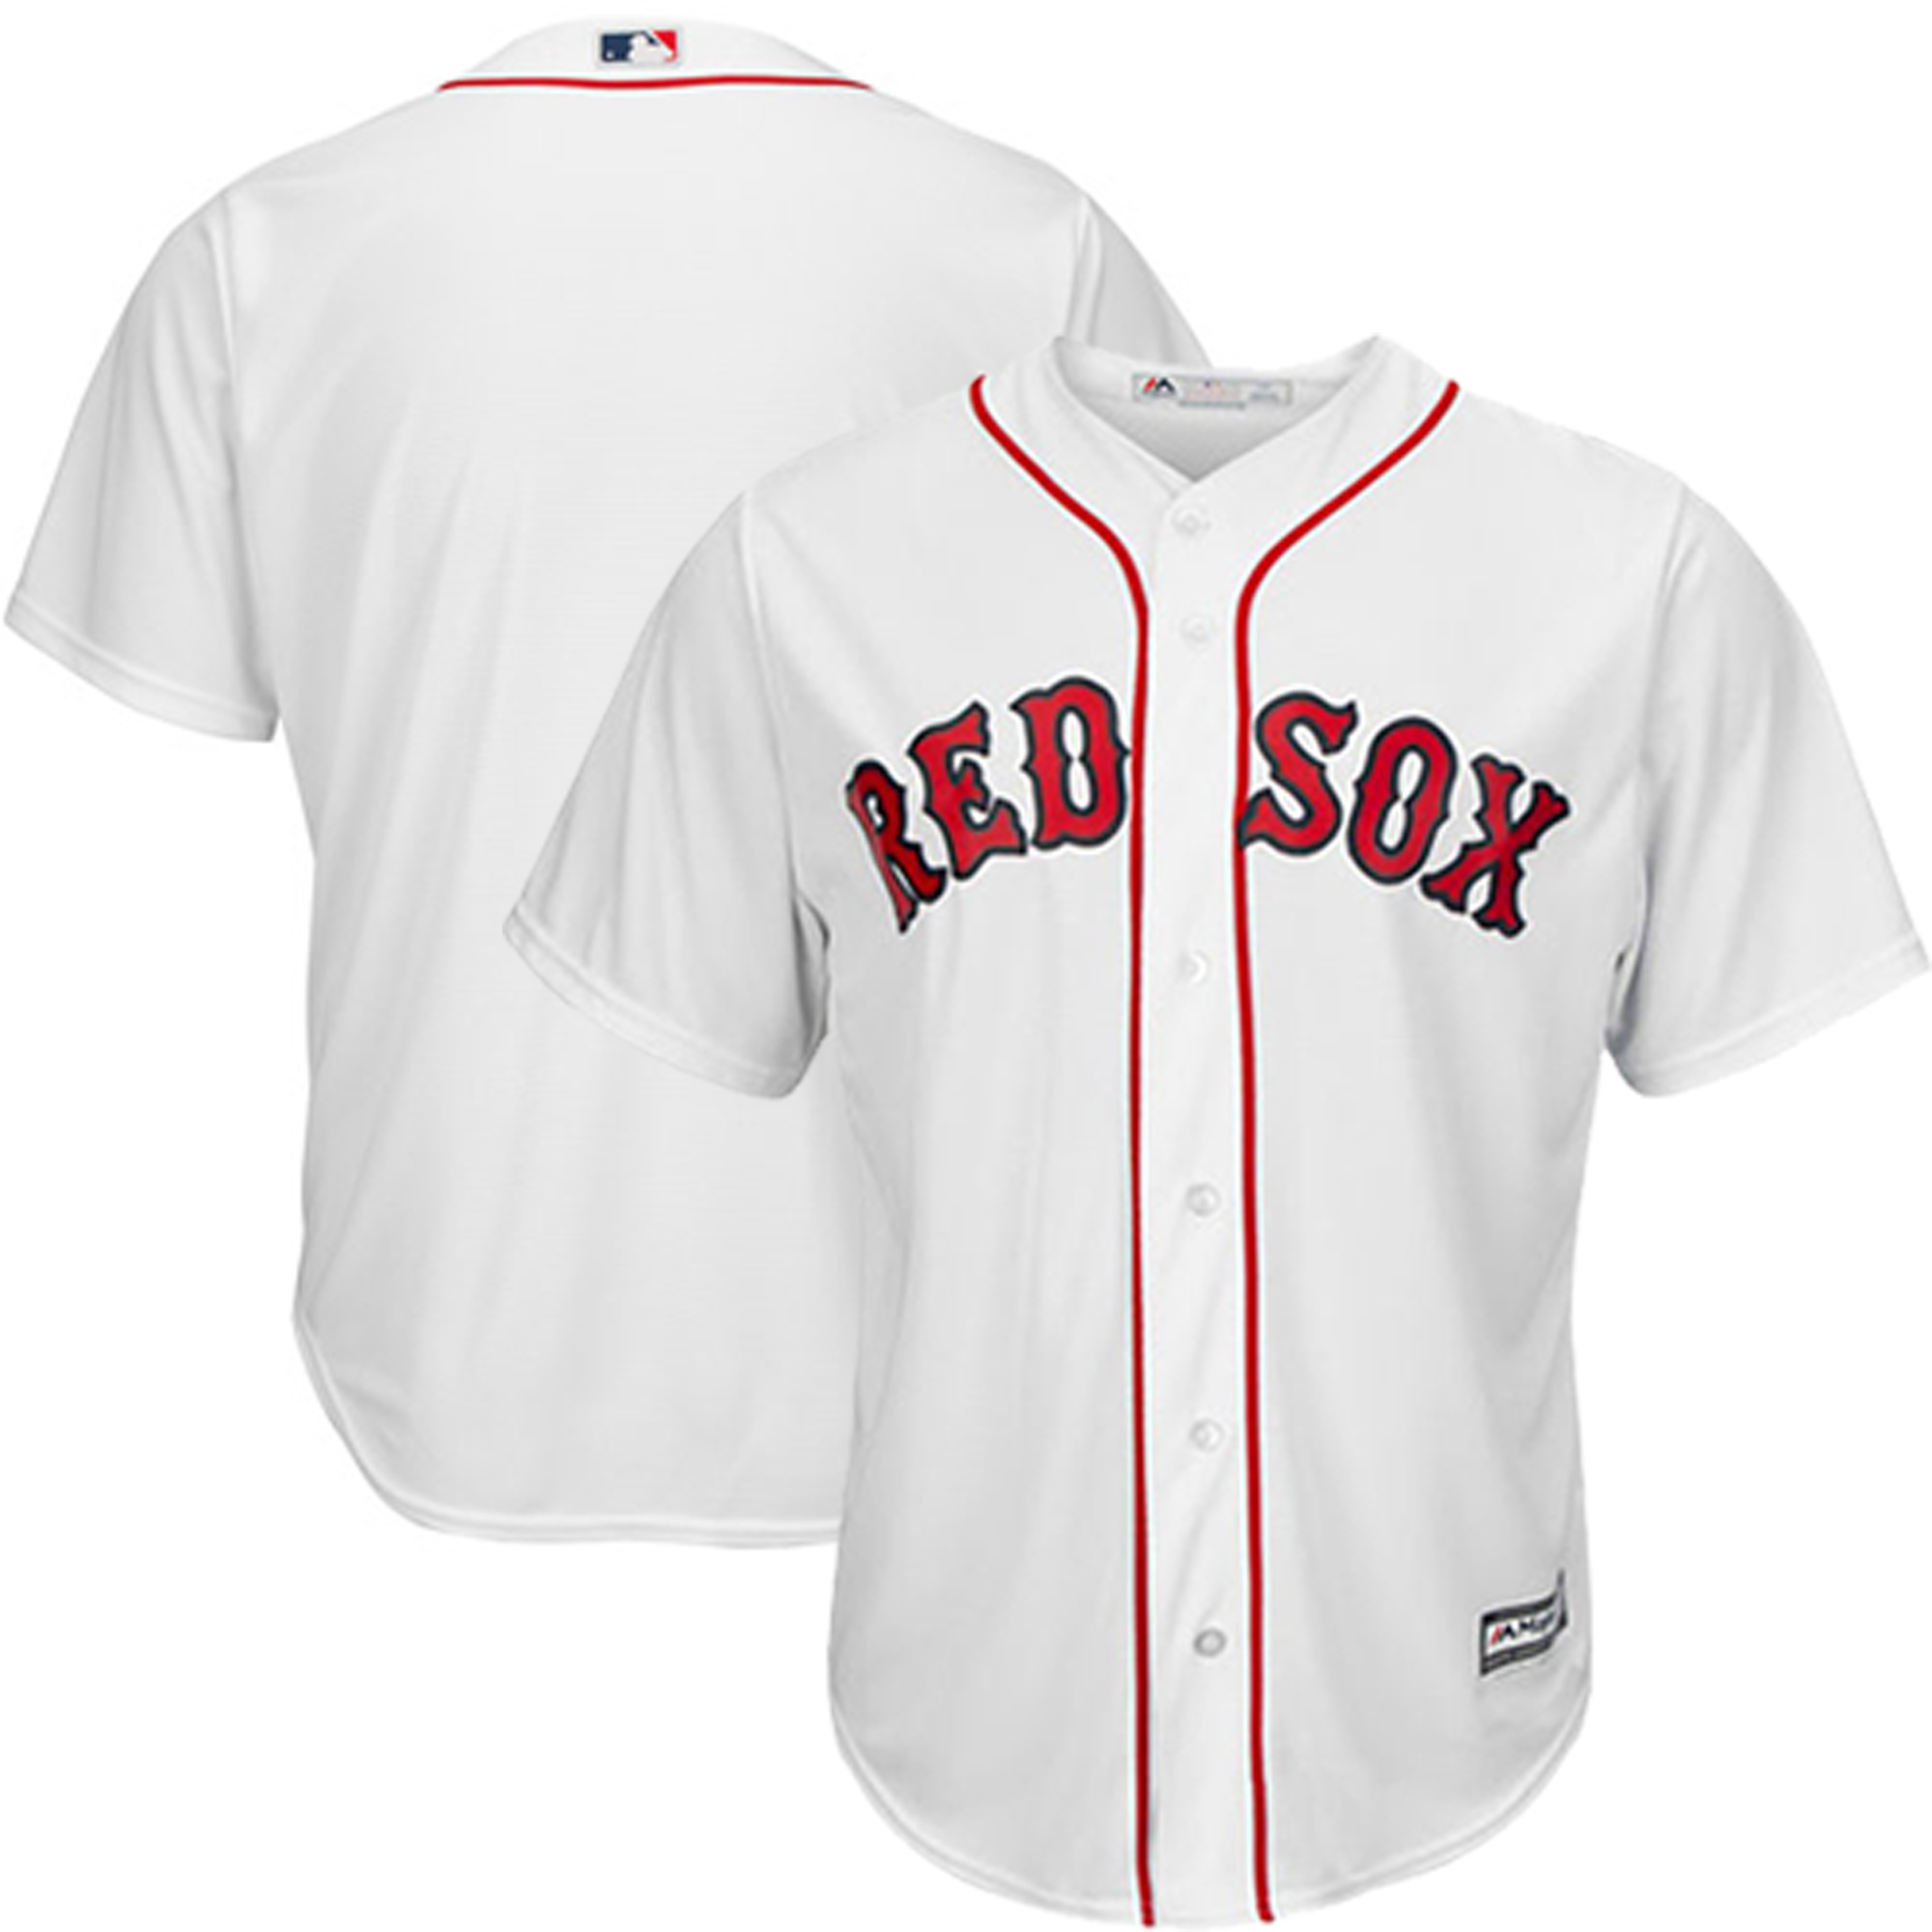 Boston Red Sox Majestic Official Cool Base Jersey - White